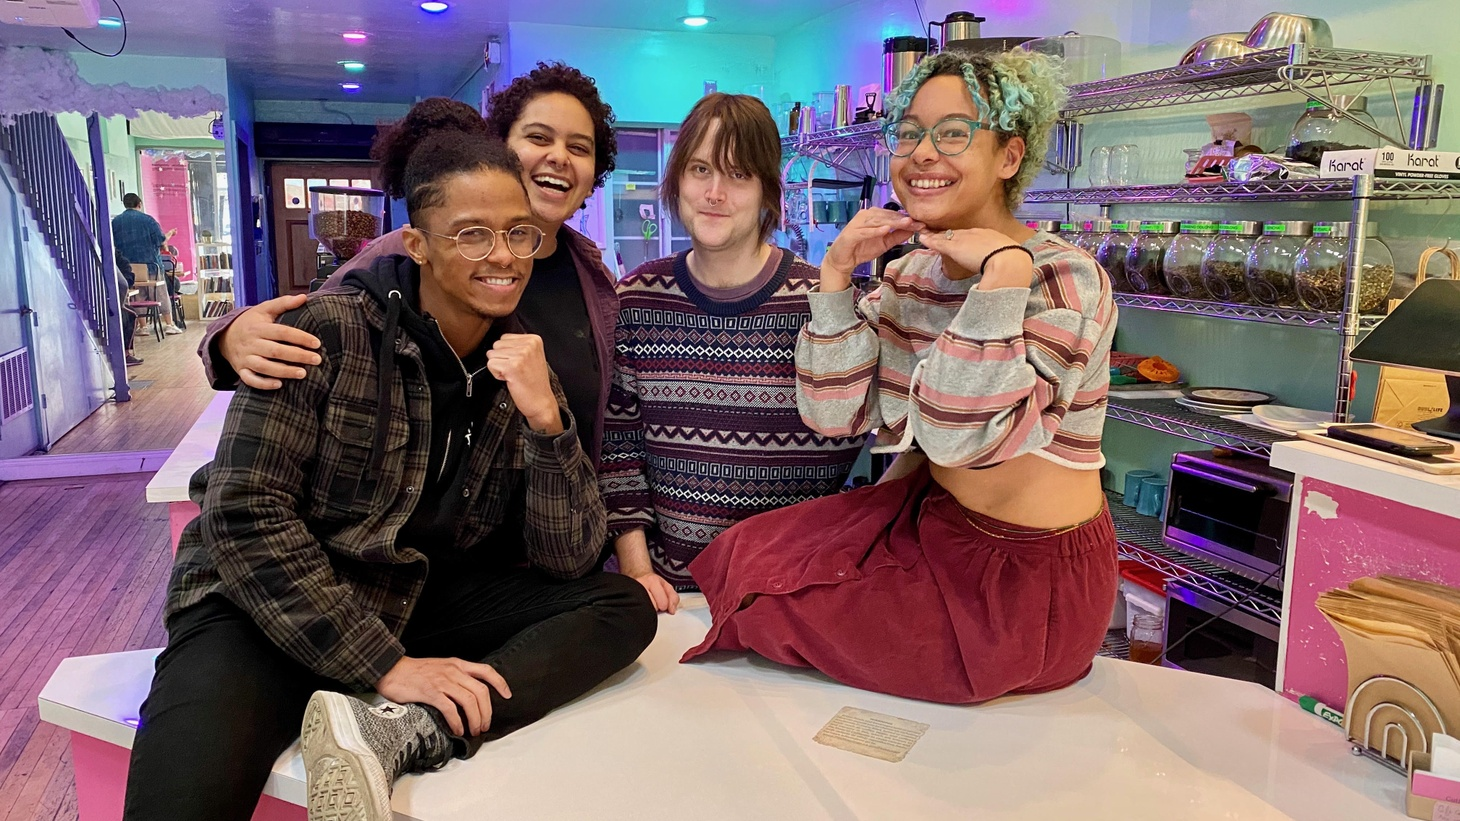 """""""We exchange 'I love you's' with our regulars,"""" says Sasha Jones. From left to right: LaVonce Goodlow II, Zael Ogwaro, Willow Connelly, Sasha Jones."""